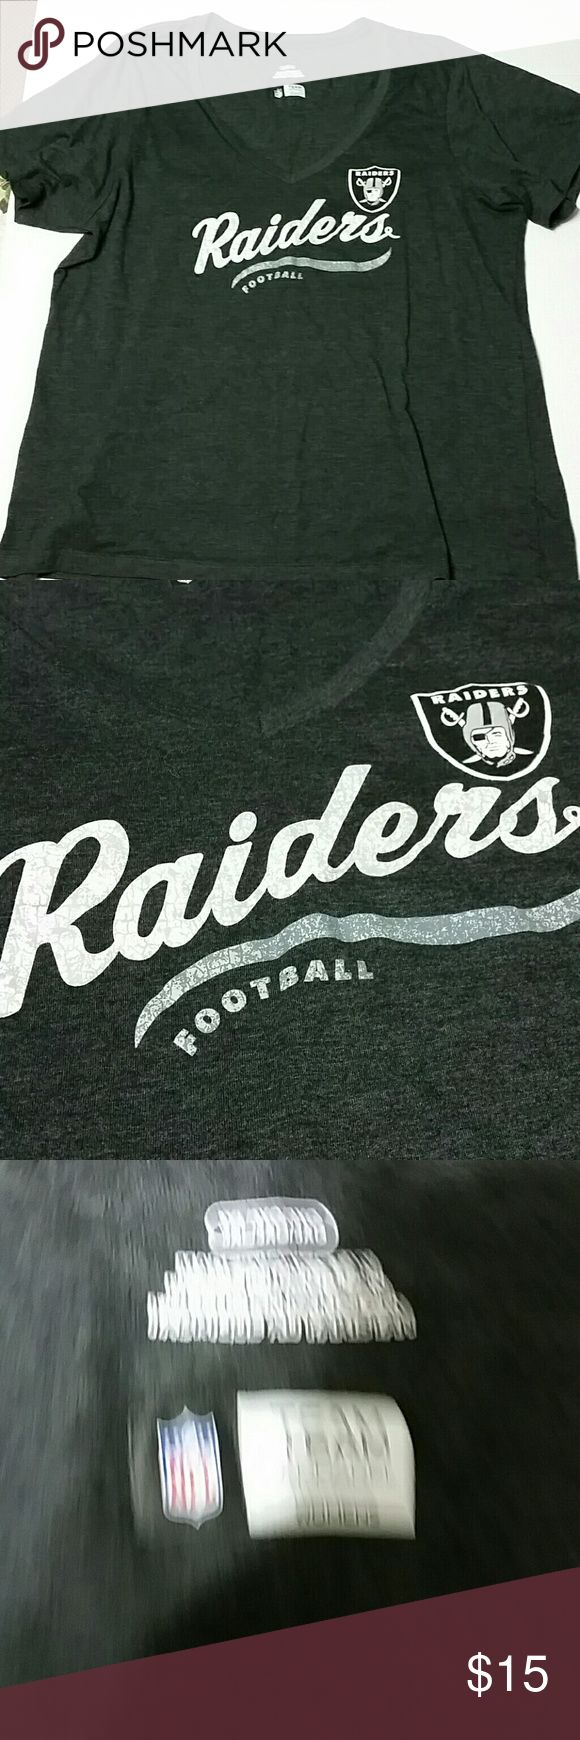 Raiders women's t shirt Size 3XL in gray Tops Tees - Short Sleeve